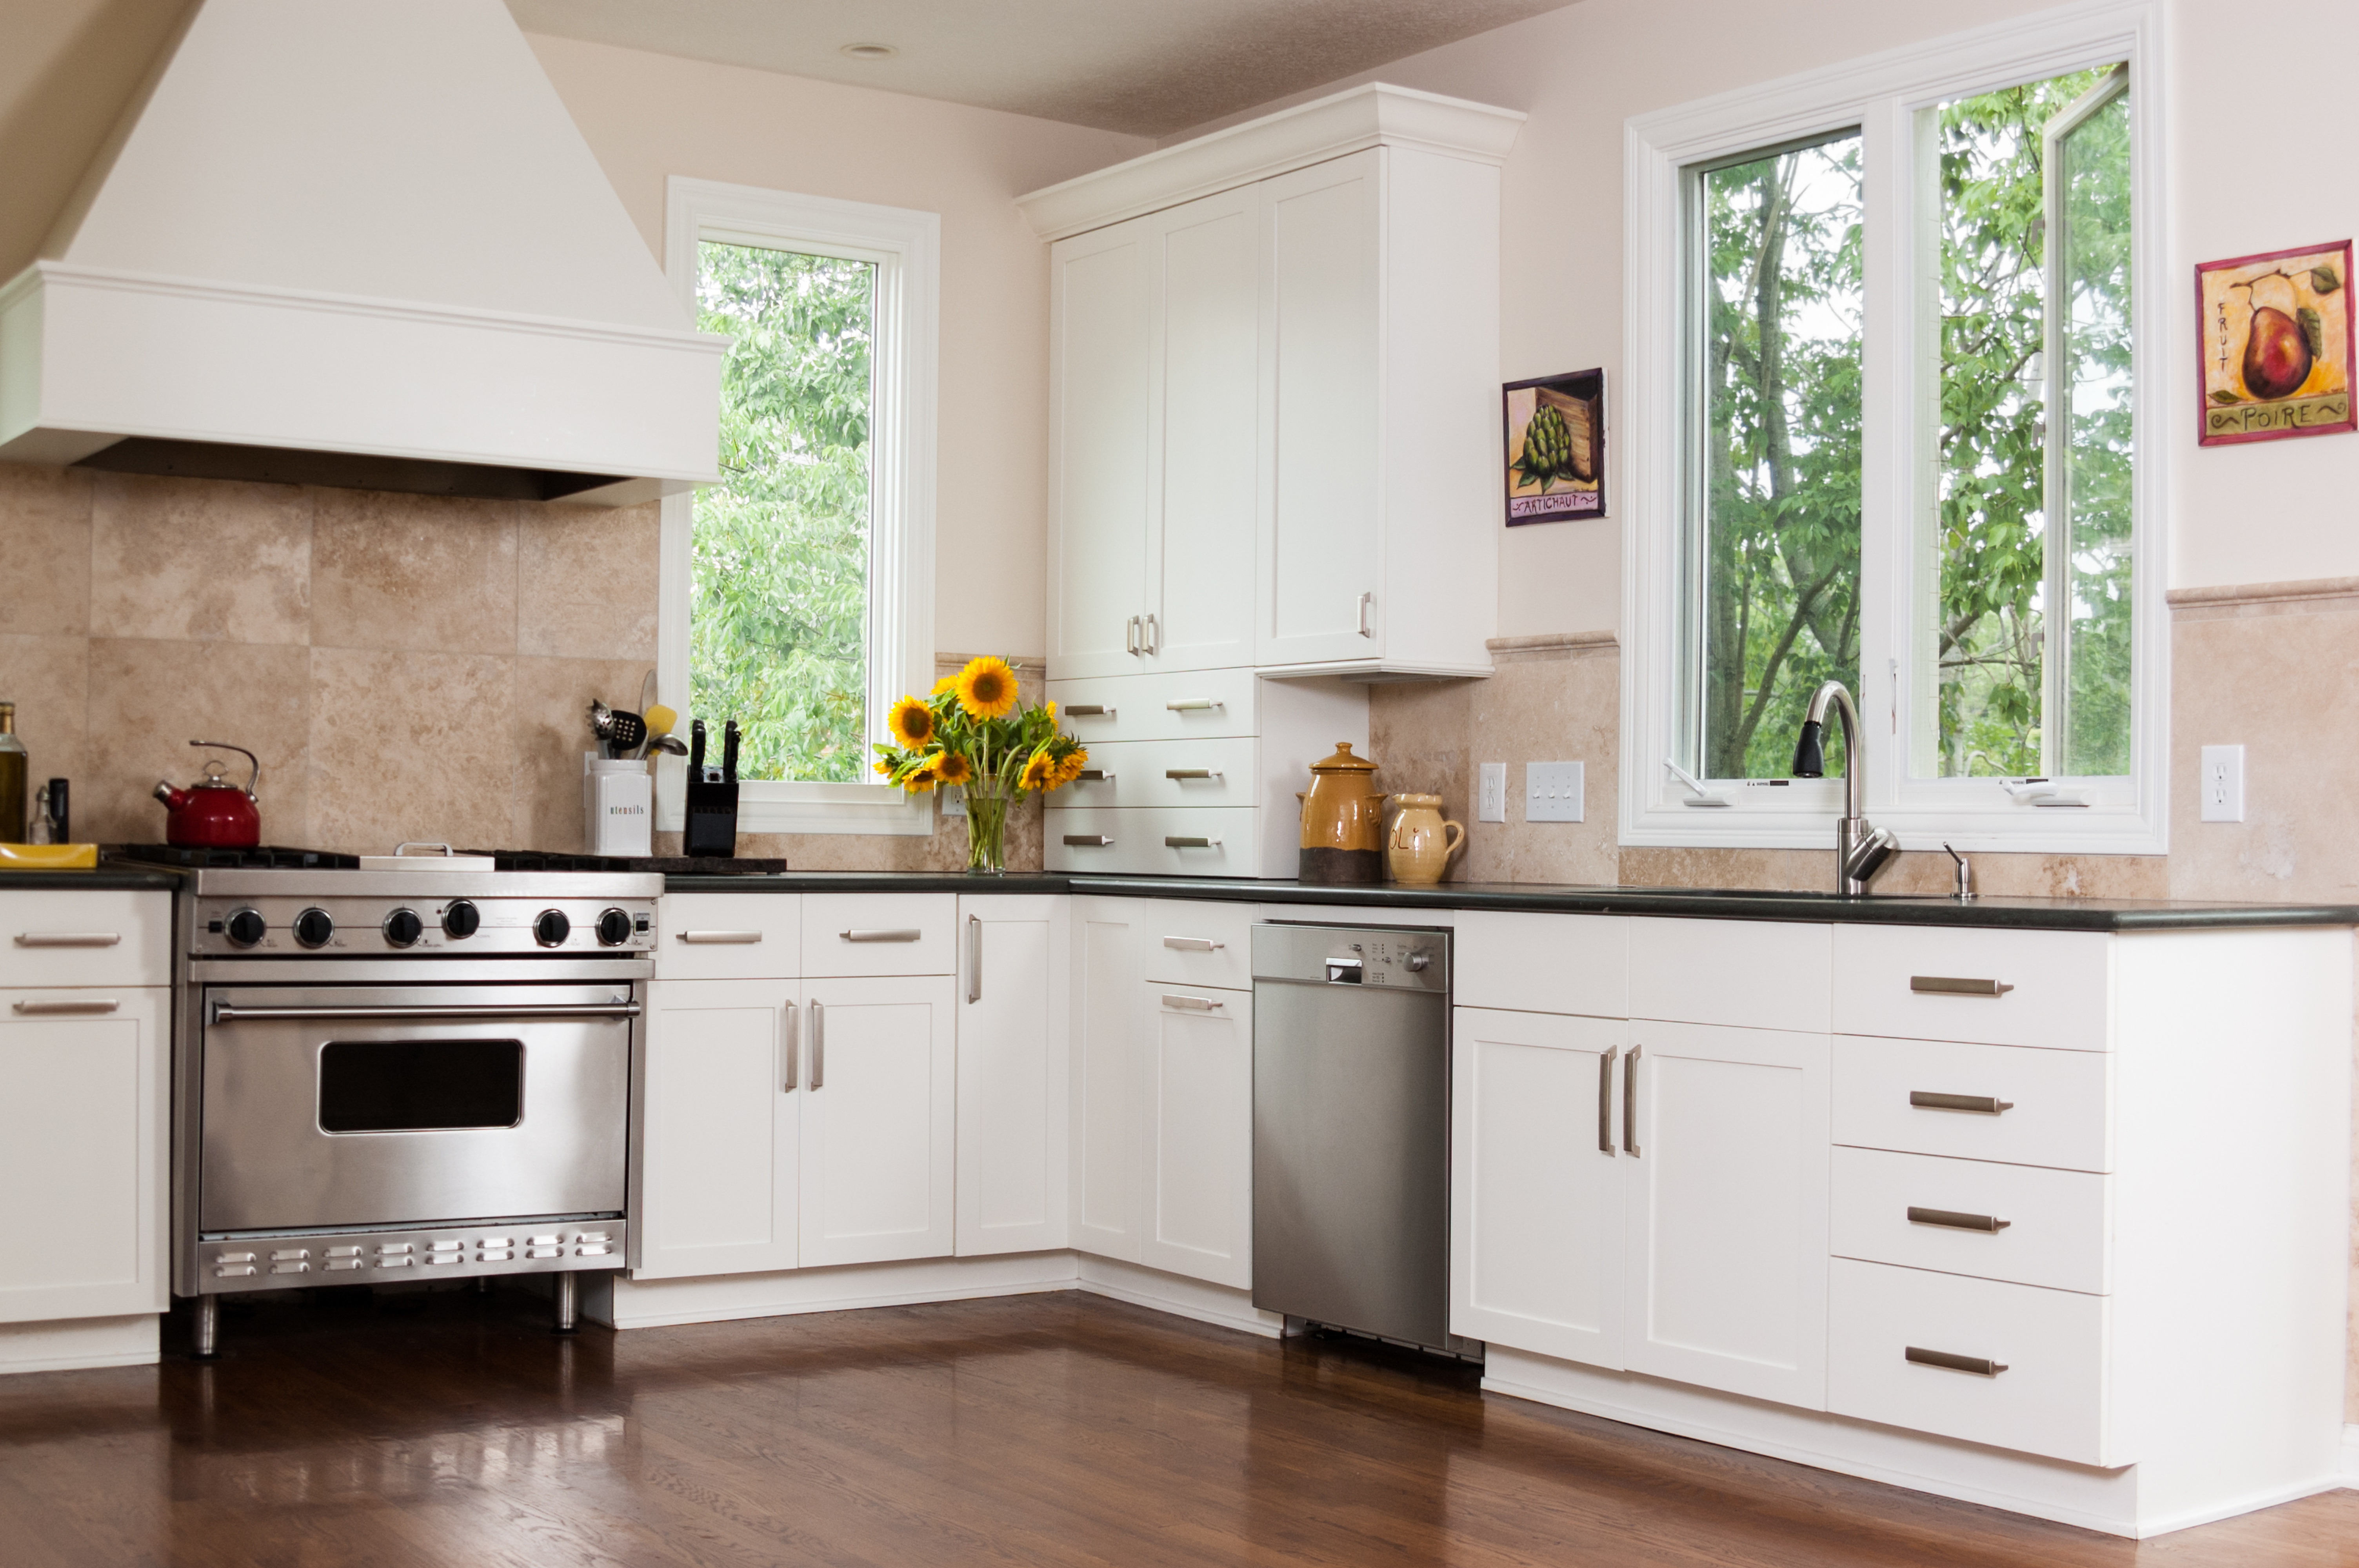 reston, va home remodeling contractor - m&d home repairs and